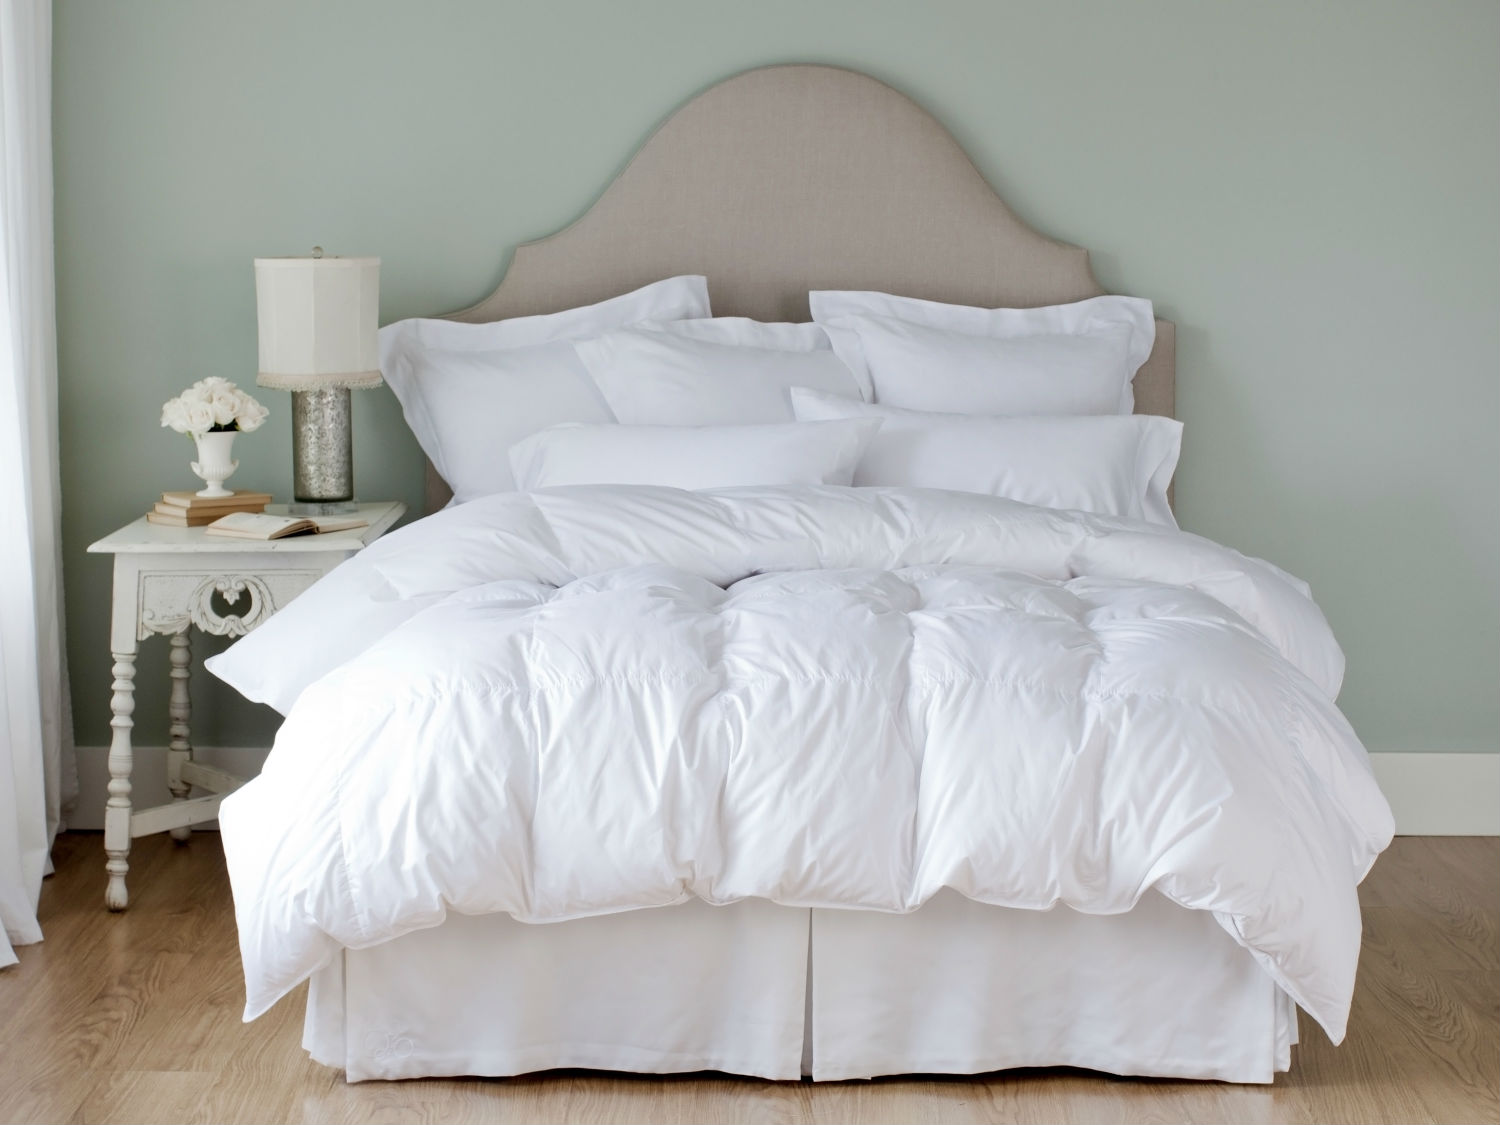 Montreux Duvet/Down Comforter & Pillows by St. Geneve Luxury Bedding